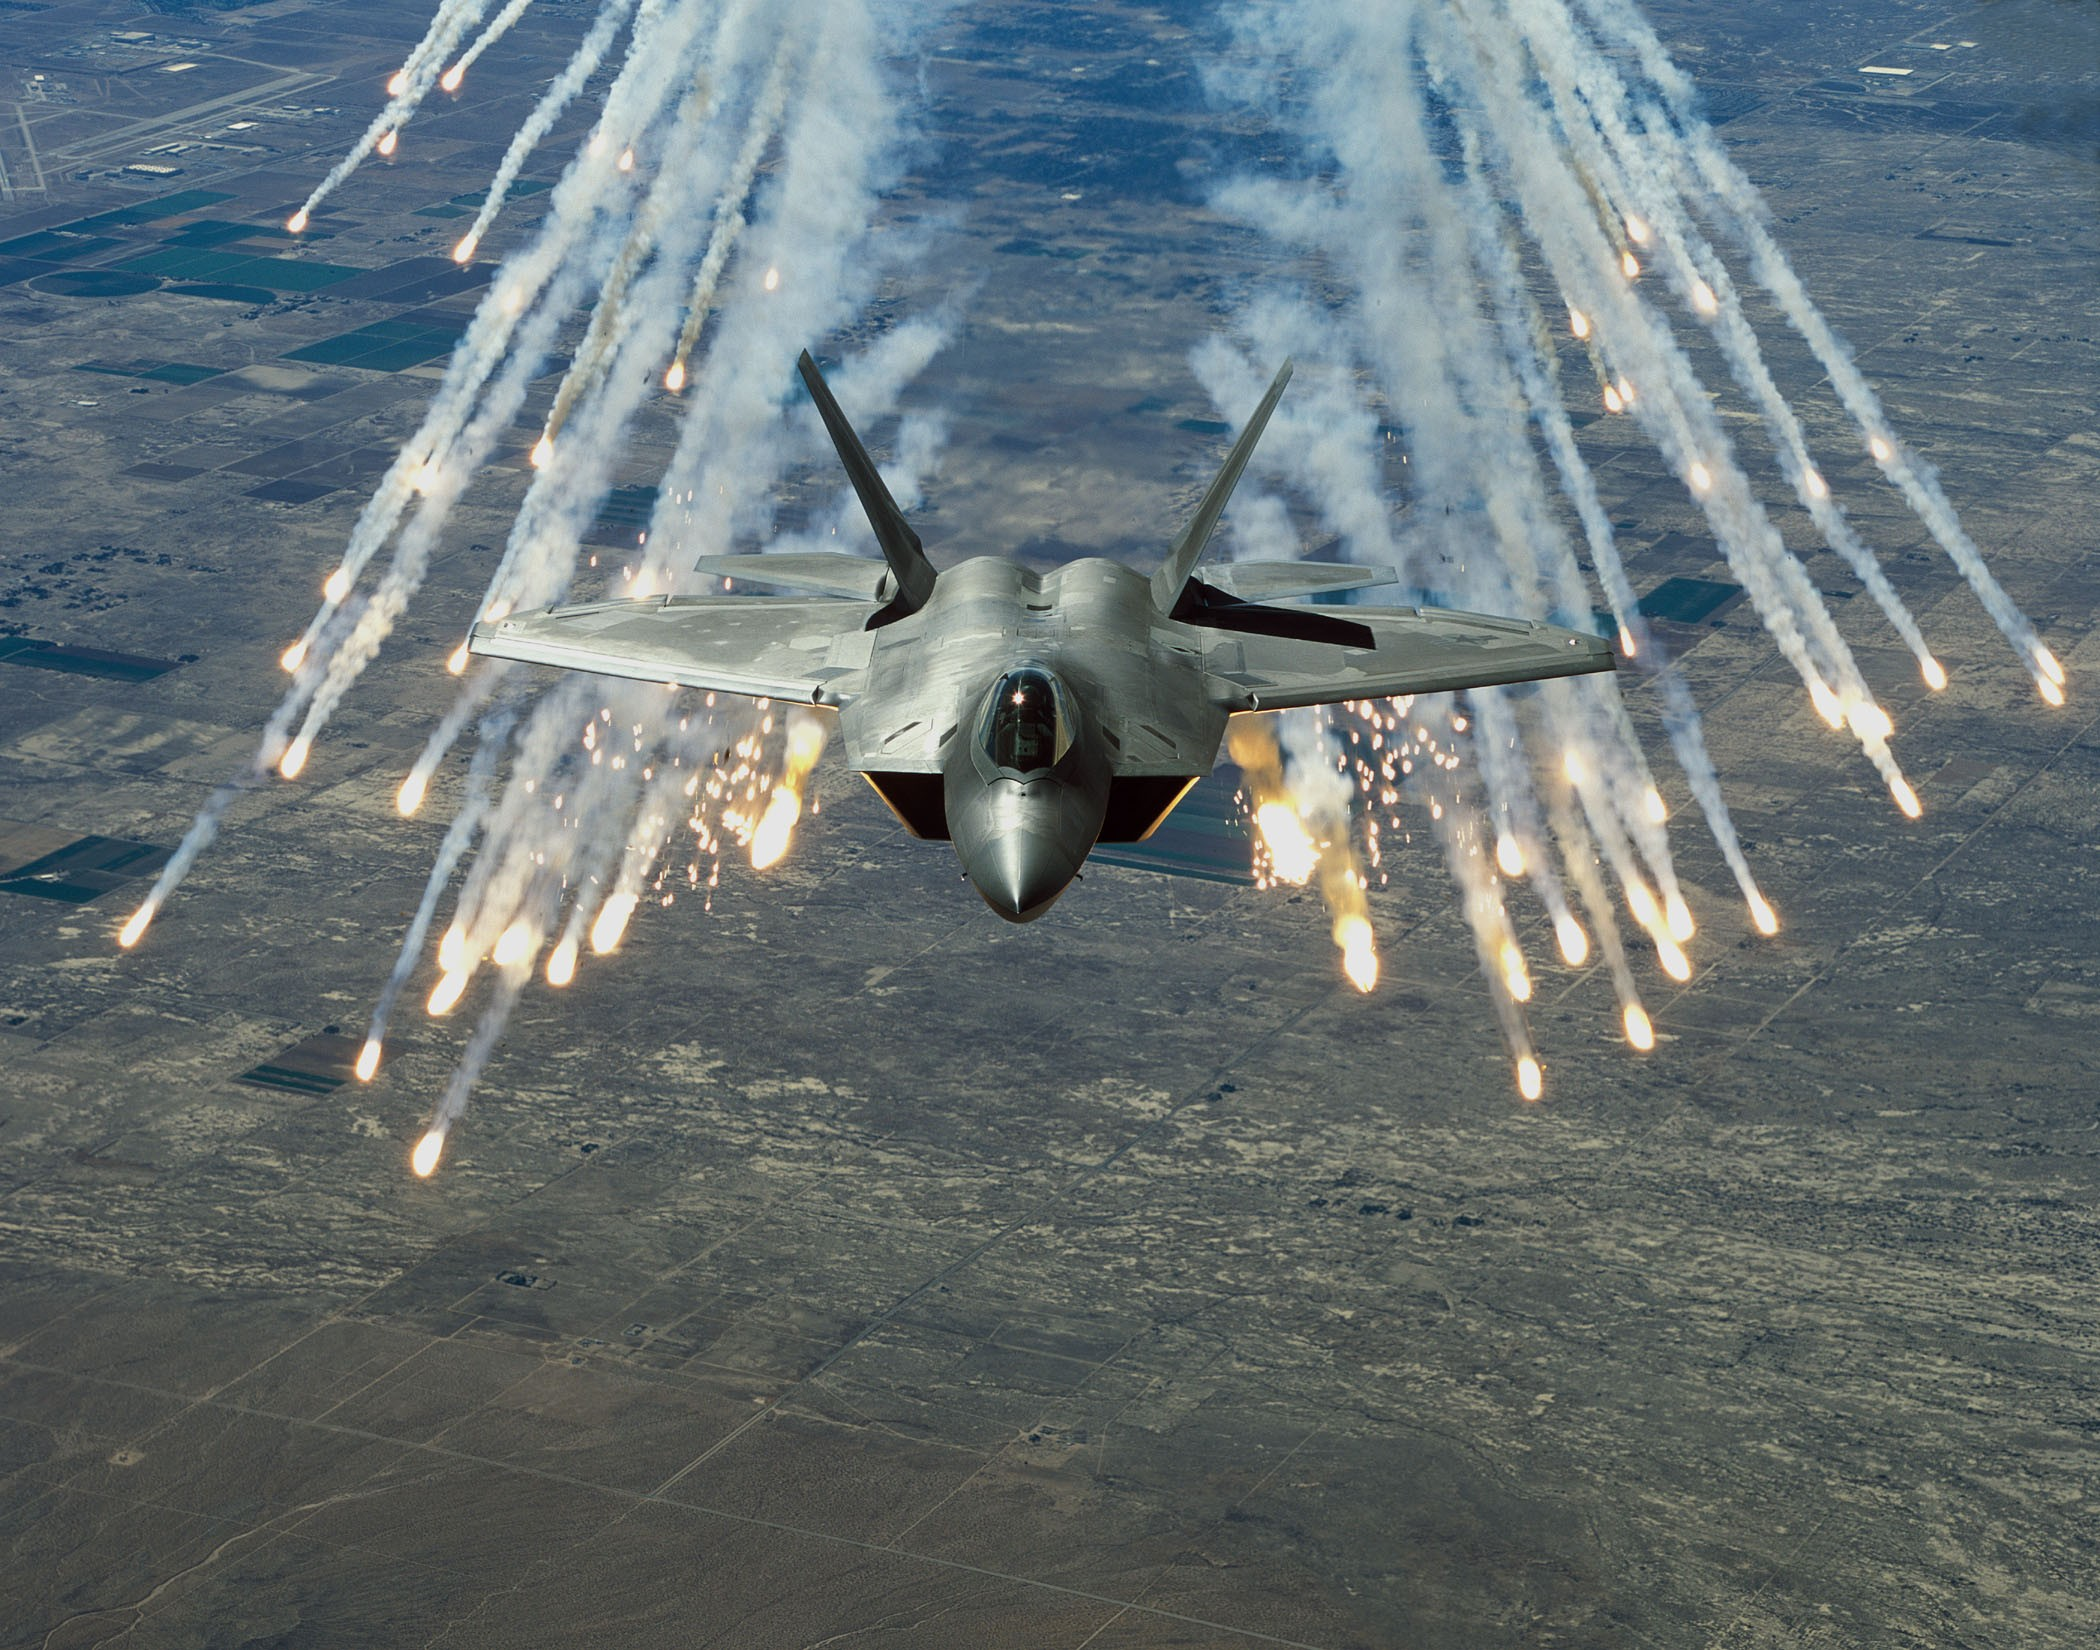 2079 Jet Fighters Hd Wallpapers Background Images Wallpaper Abyss Images, Photos, Reviews